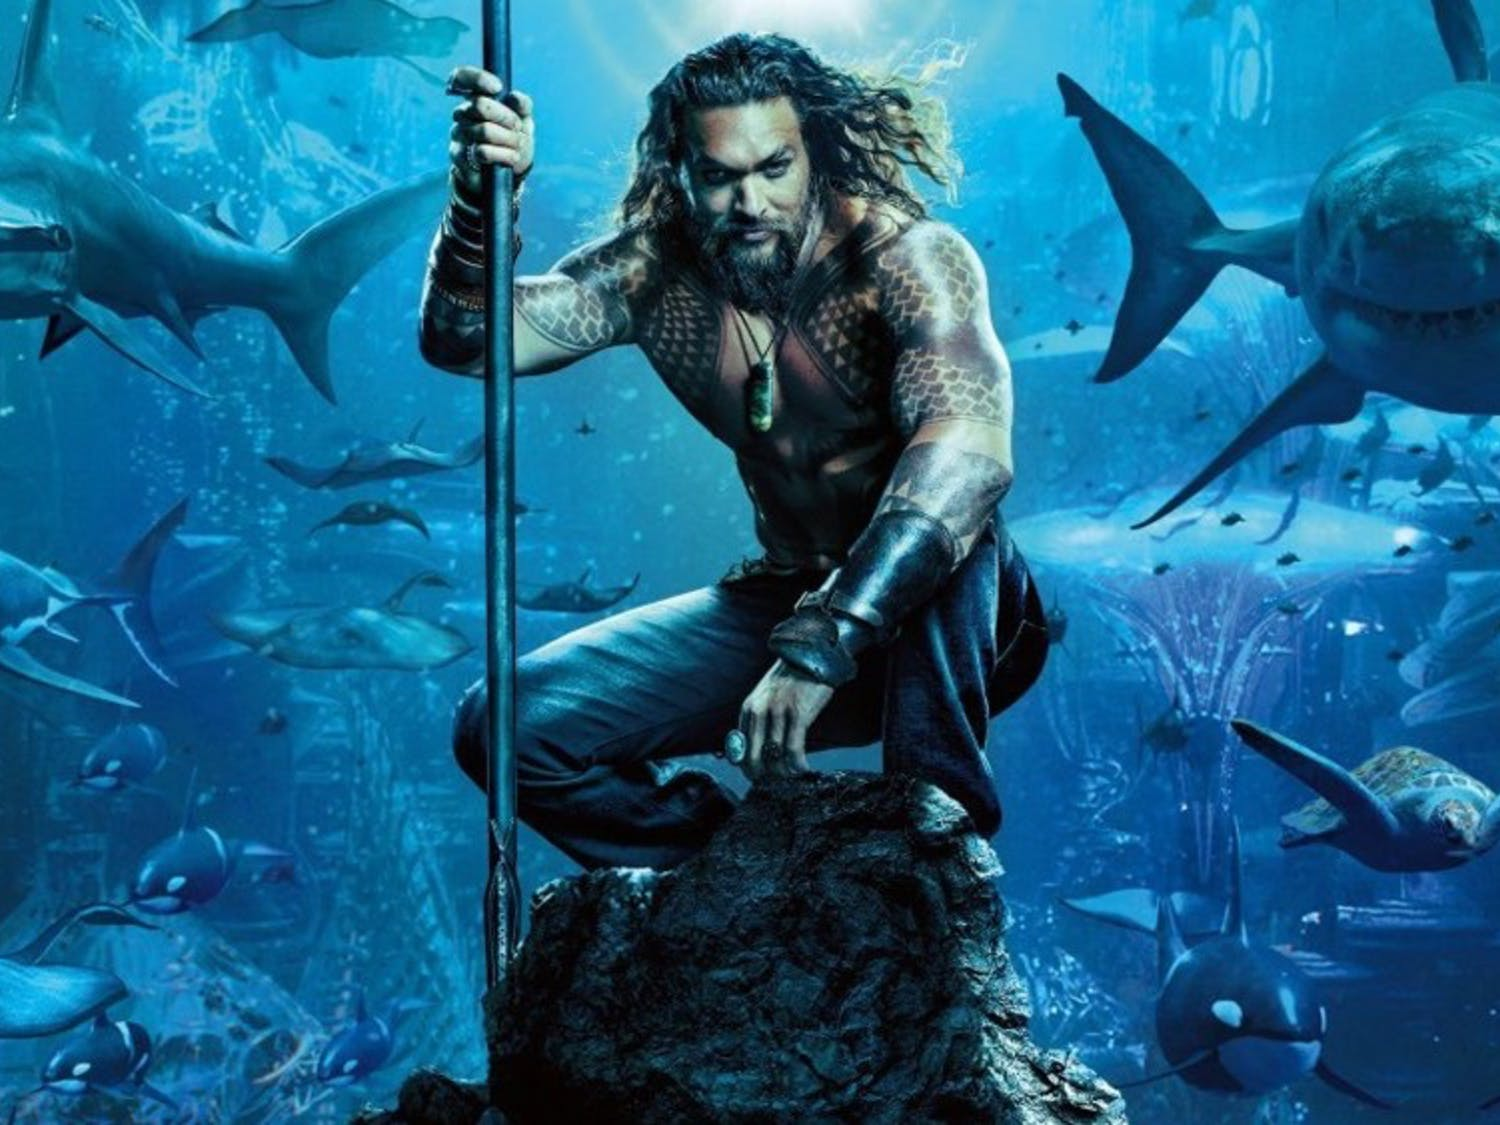 """James Wan's """"Aquaman"""" aims to flesh out DC's seafaring superhero for the silver screen."""